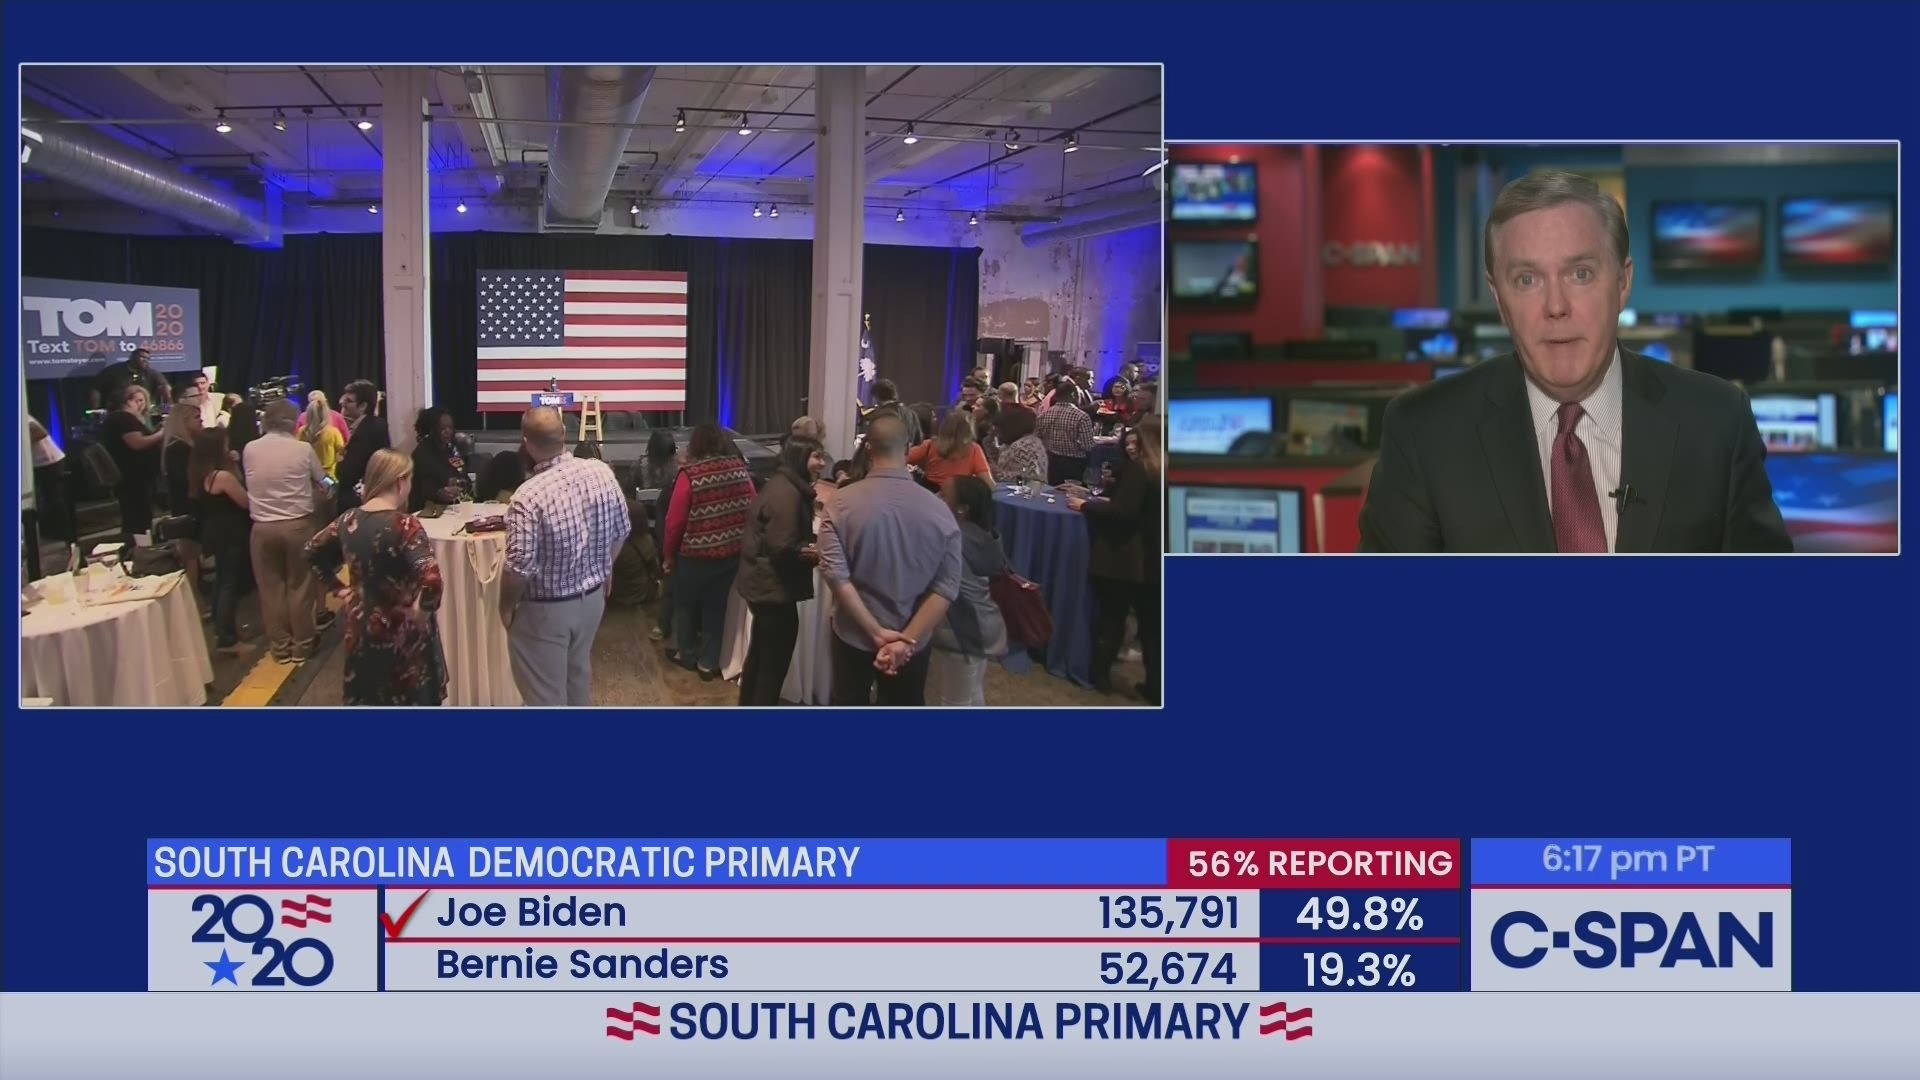 South Carolina Democratic Primary Coverage And Speeches C Span Org Eat hot chip and lie uploaded by kym collector bot eat hot chip and lie uploaded by philipp comments (0) there are no comments currently available. campaign 2020